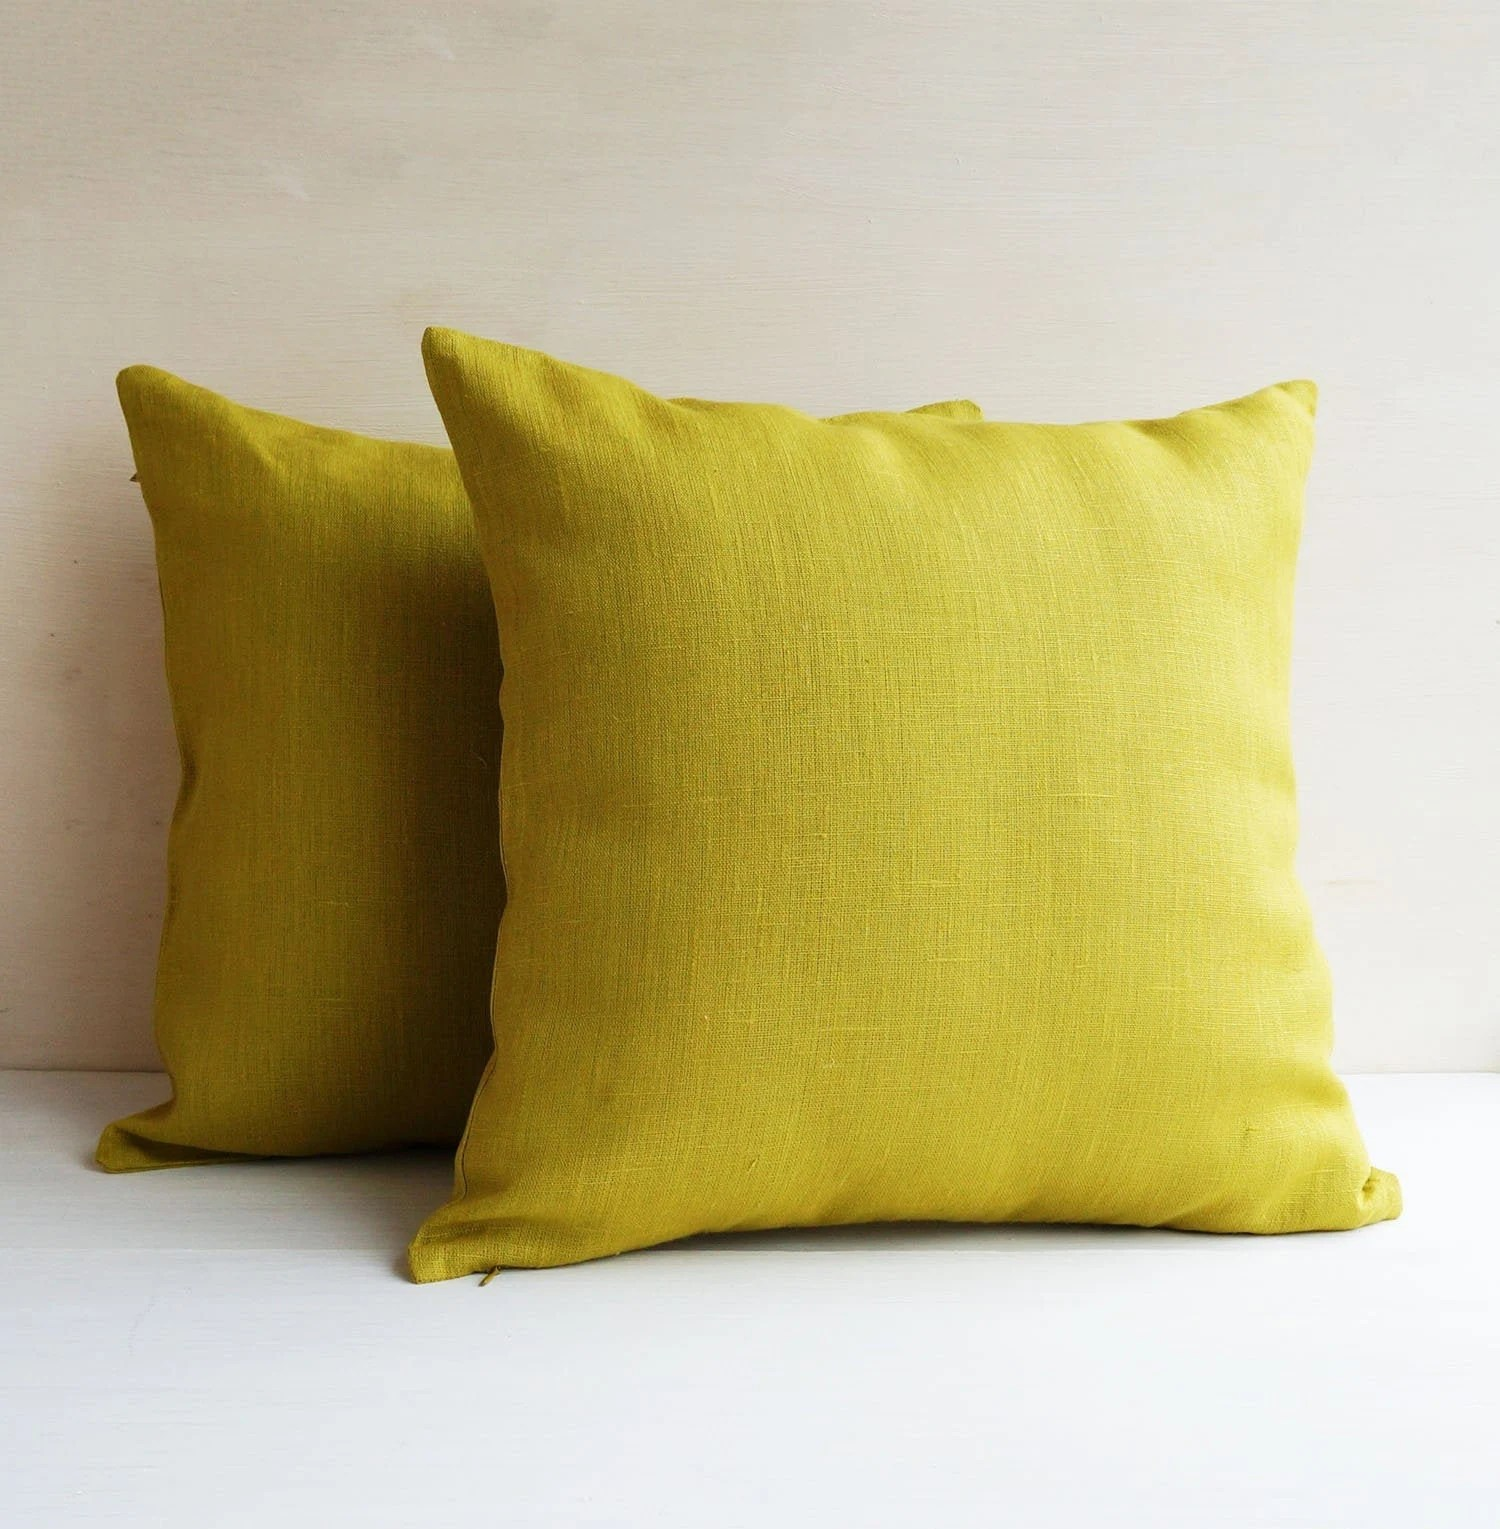 set of 2 lime green linen pillow cases chartreuse throw pillow covers for sofa cushion bed or outdoor 18x18 20x20 22x22